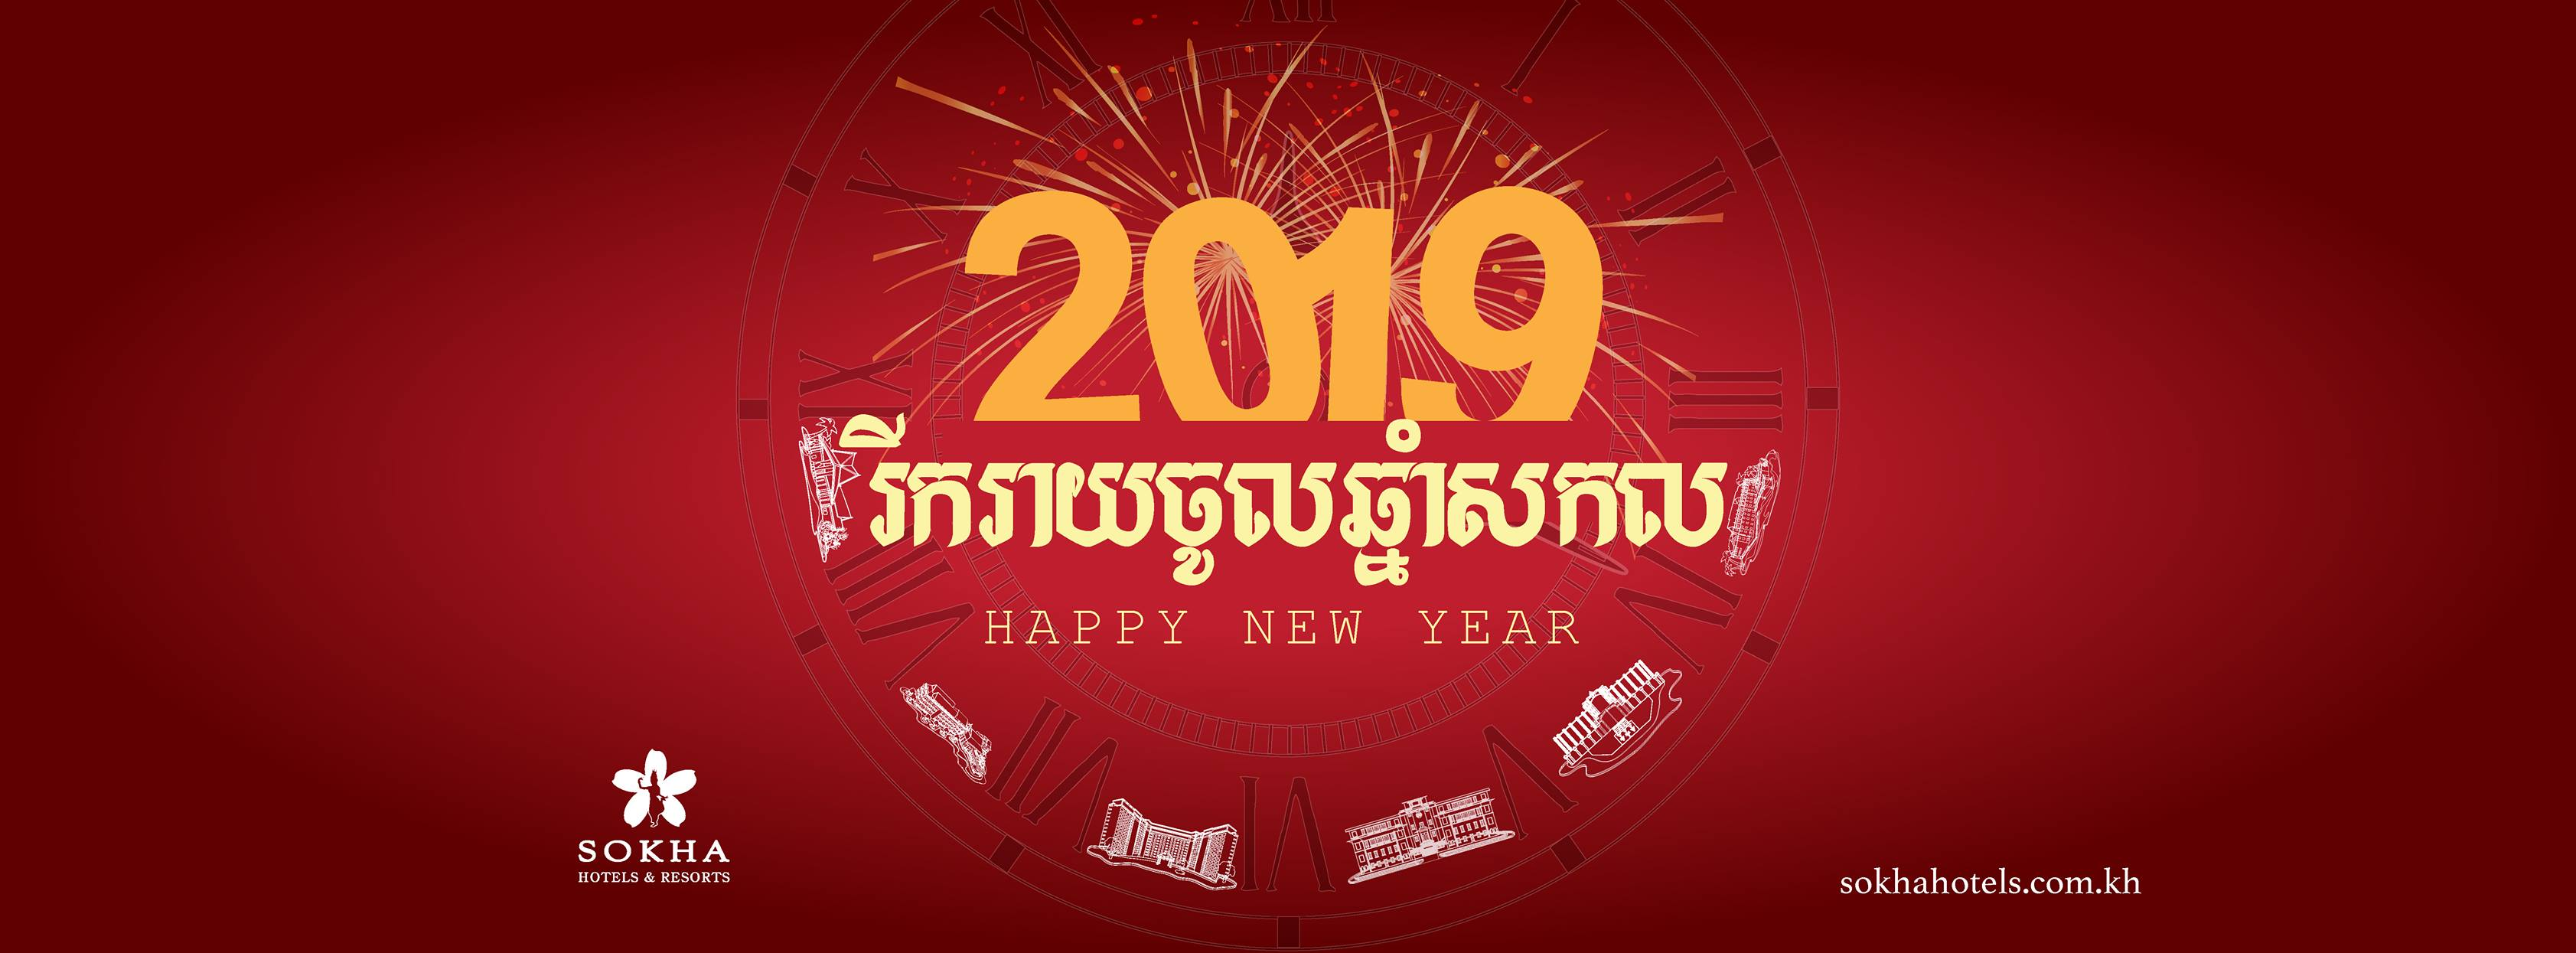 sokha siem reap new year 2019